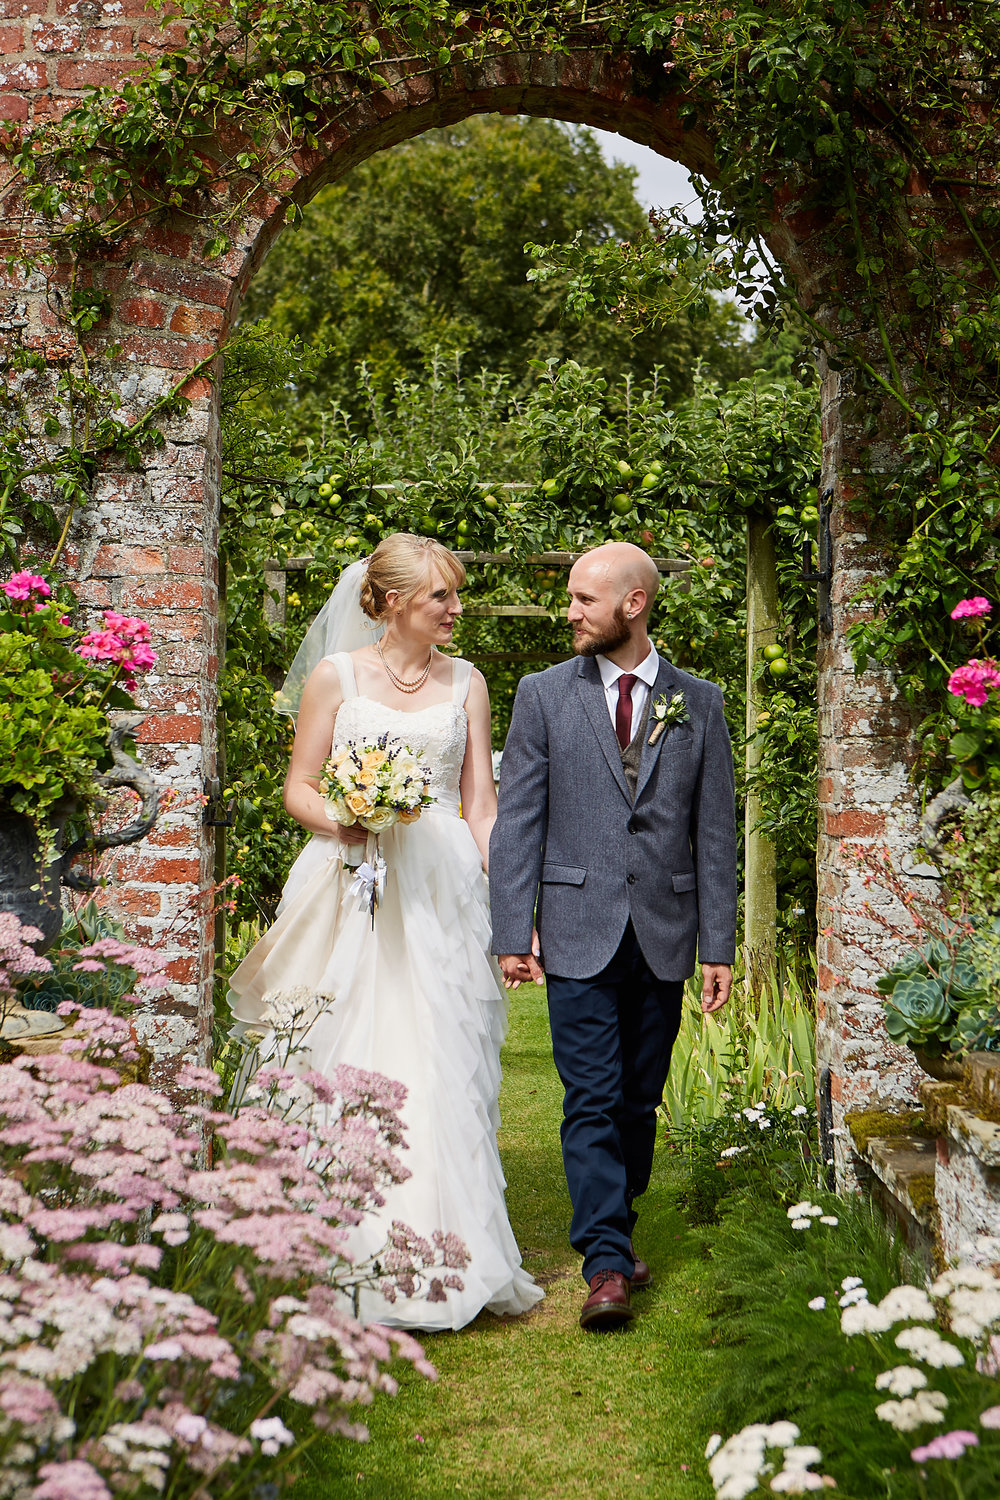 Wedding photography at Gunby Hall by Lincolnshire wedding photographer 166 photography